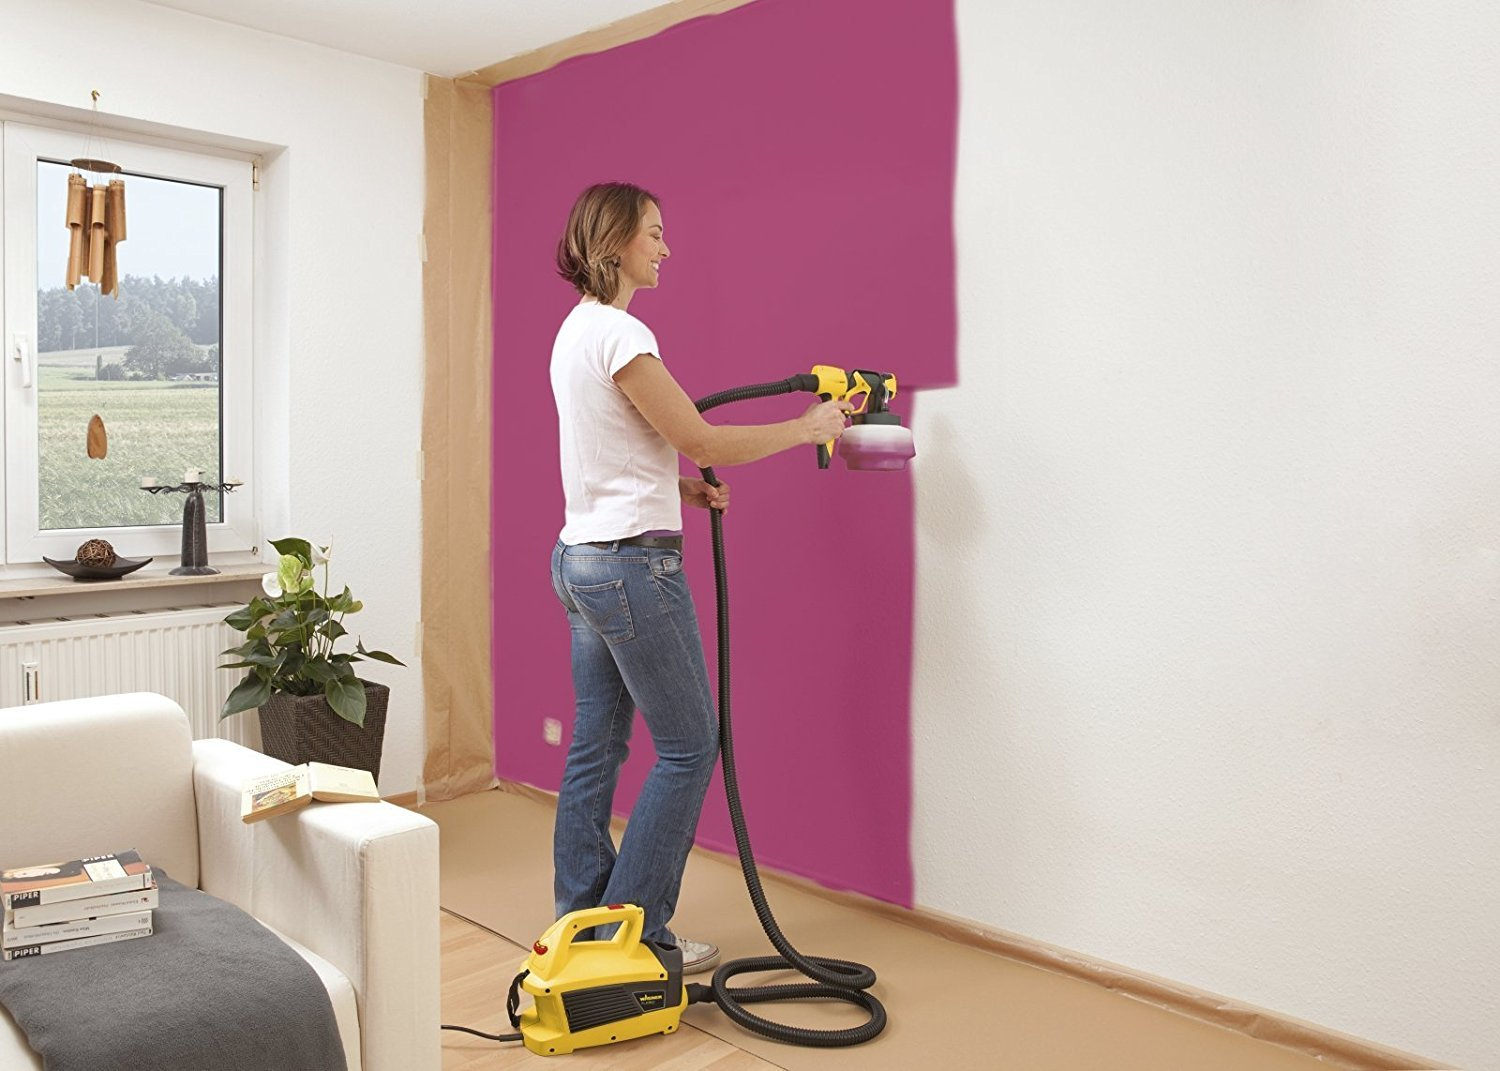 10 best paint sprayers for interior walls reviewed \u0026 rated & Interior Walls Paints | simple small house design